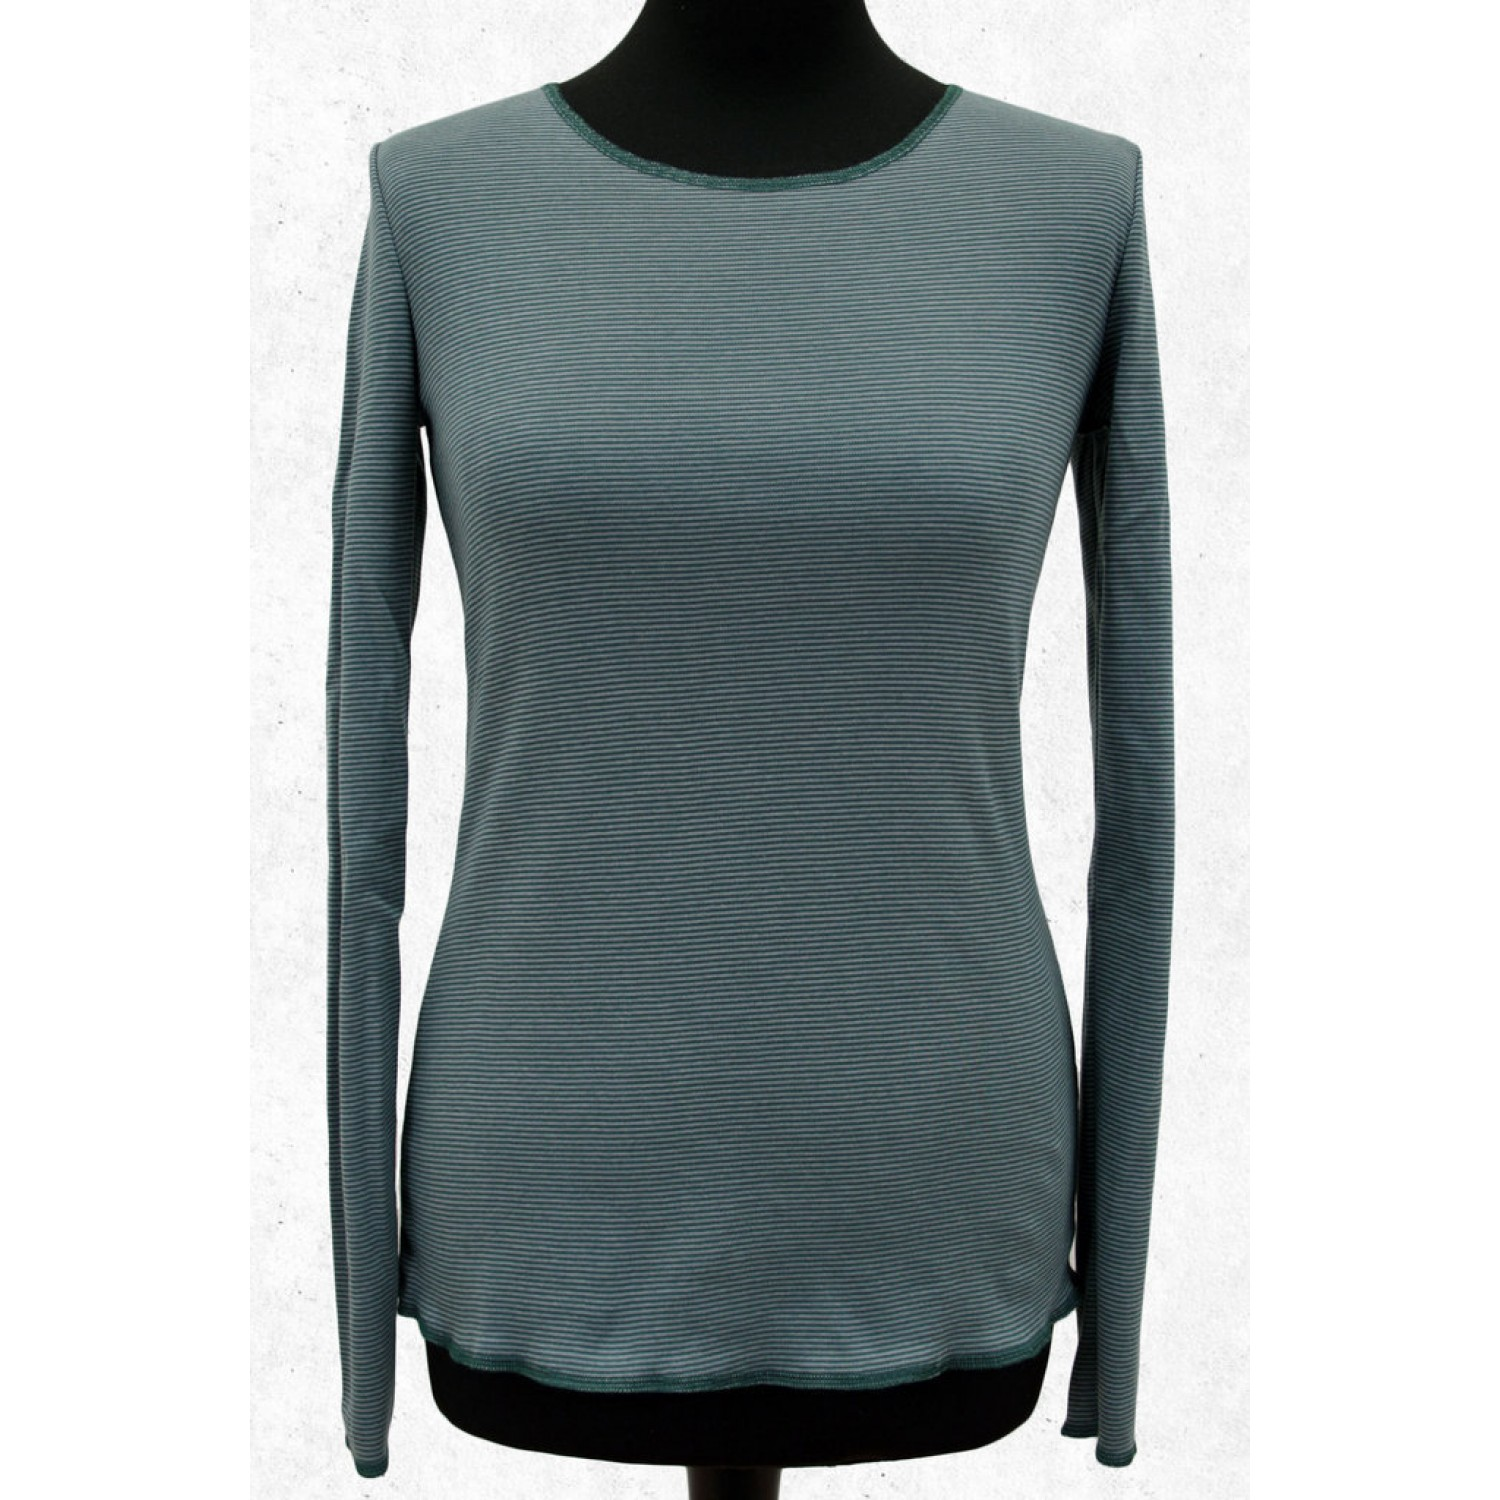 Women Long-sleeved shirt Blue-Green-Grey ringed | Jalfe